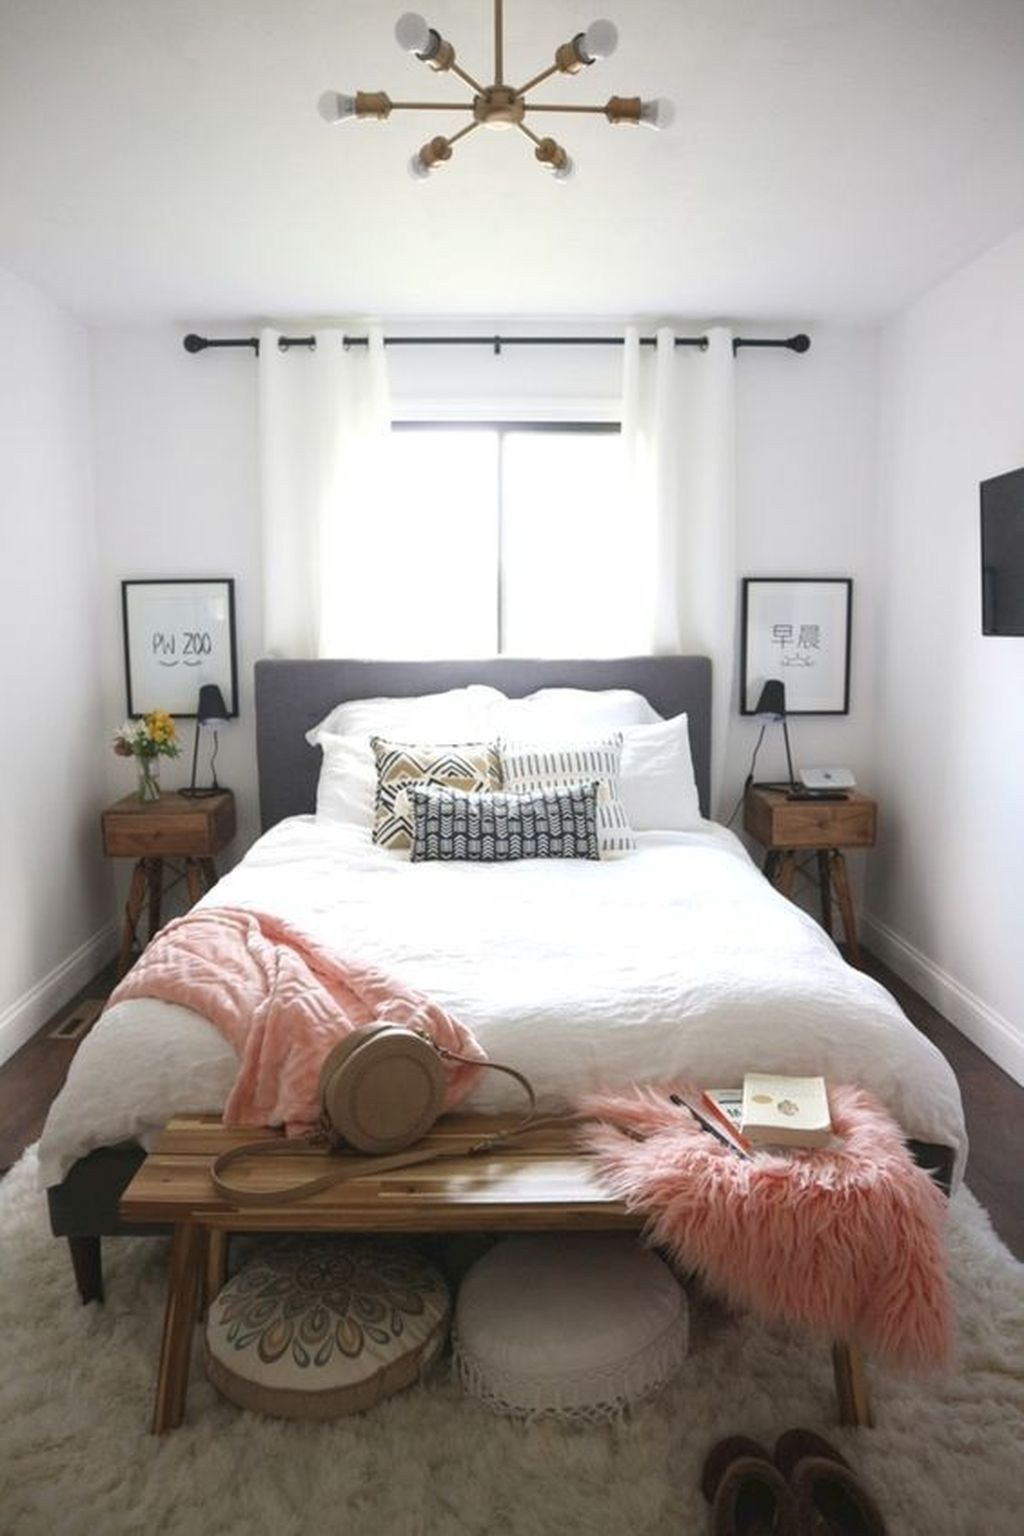 Small Master Bedroom Design With Elegant Style Bedroom Design Elegant Master Small Style In 2020 Small Apartment Bedrooms Small Guest Bedroom Guest Bedroom Design Master bedroom ideas 2020